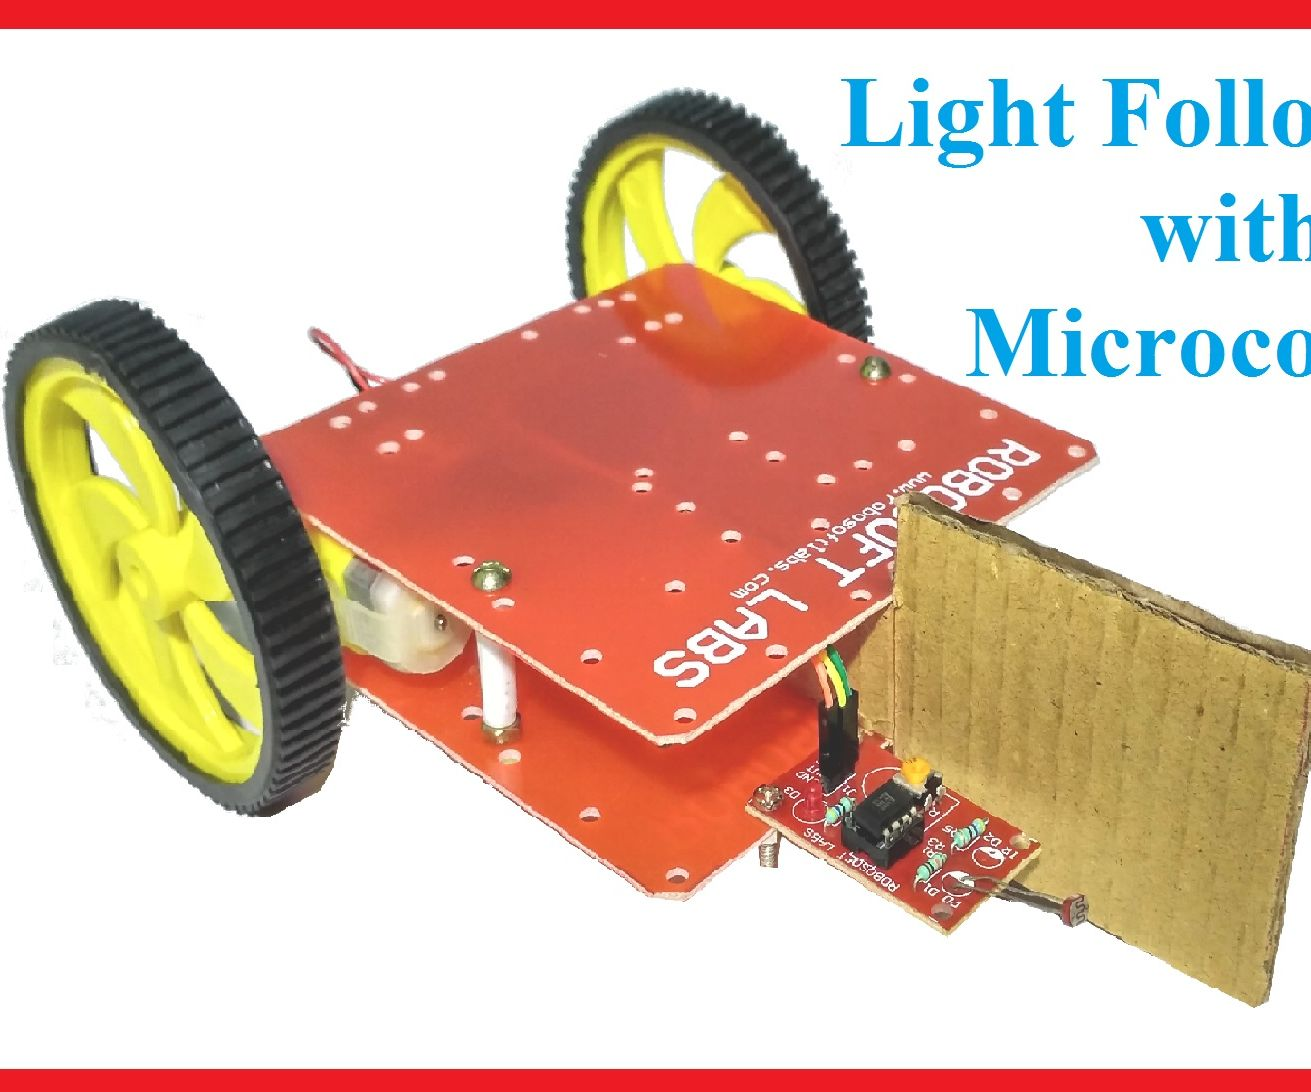 How to Make a Light Following Robot Without Microcontroller (In Less Then 10 Minutes)